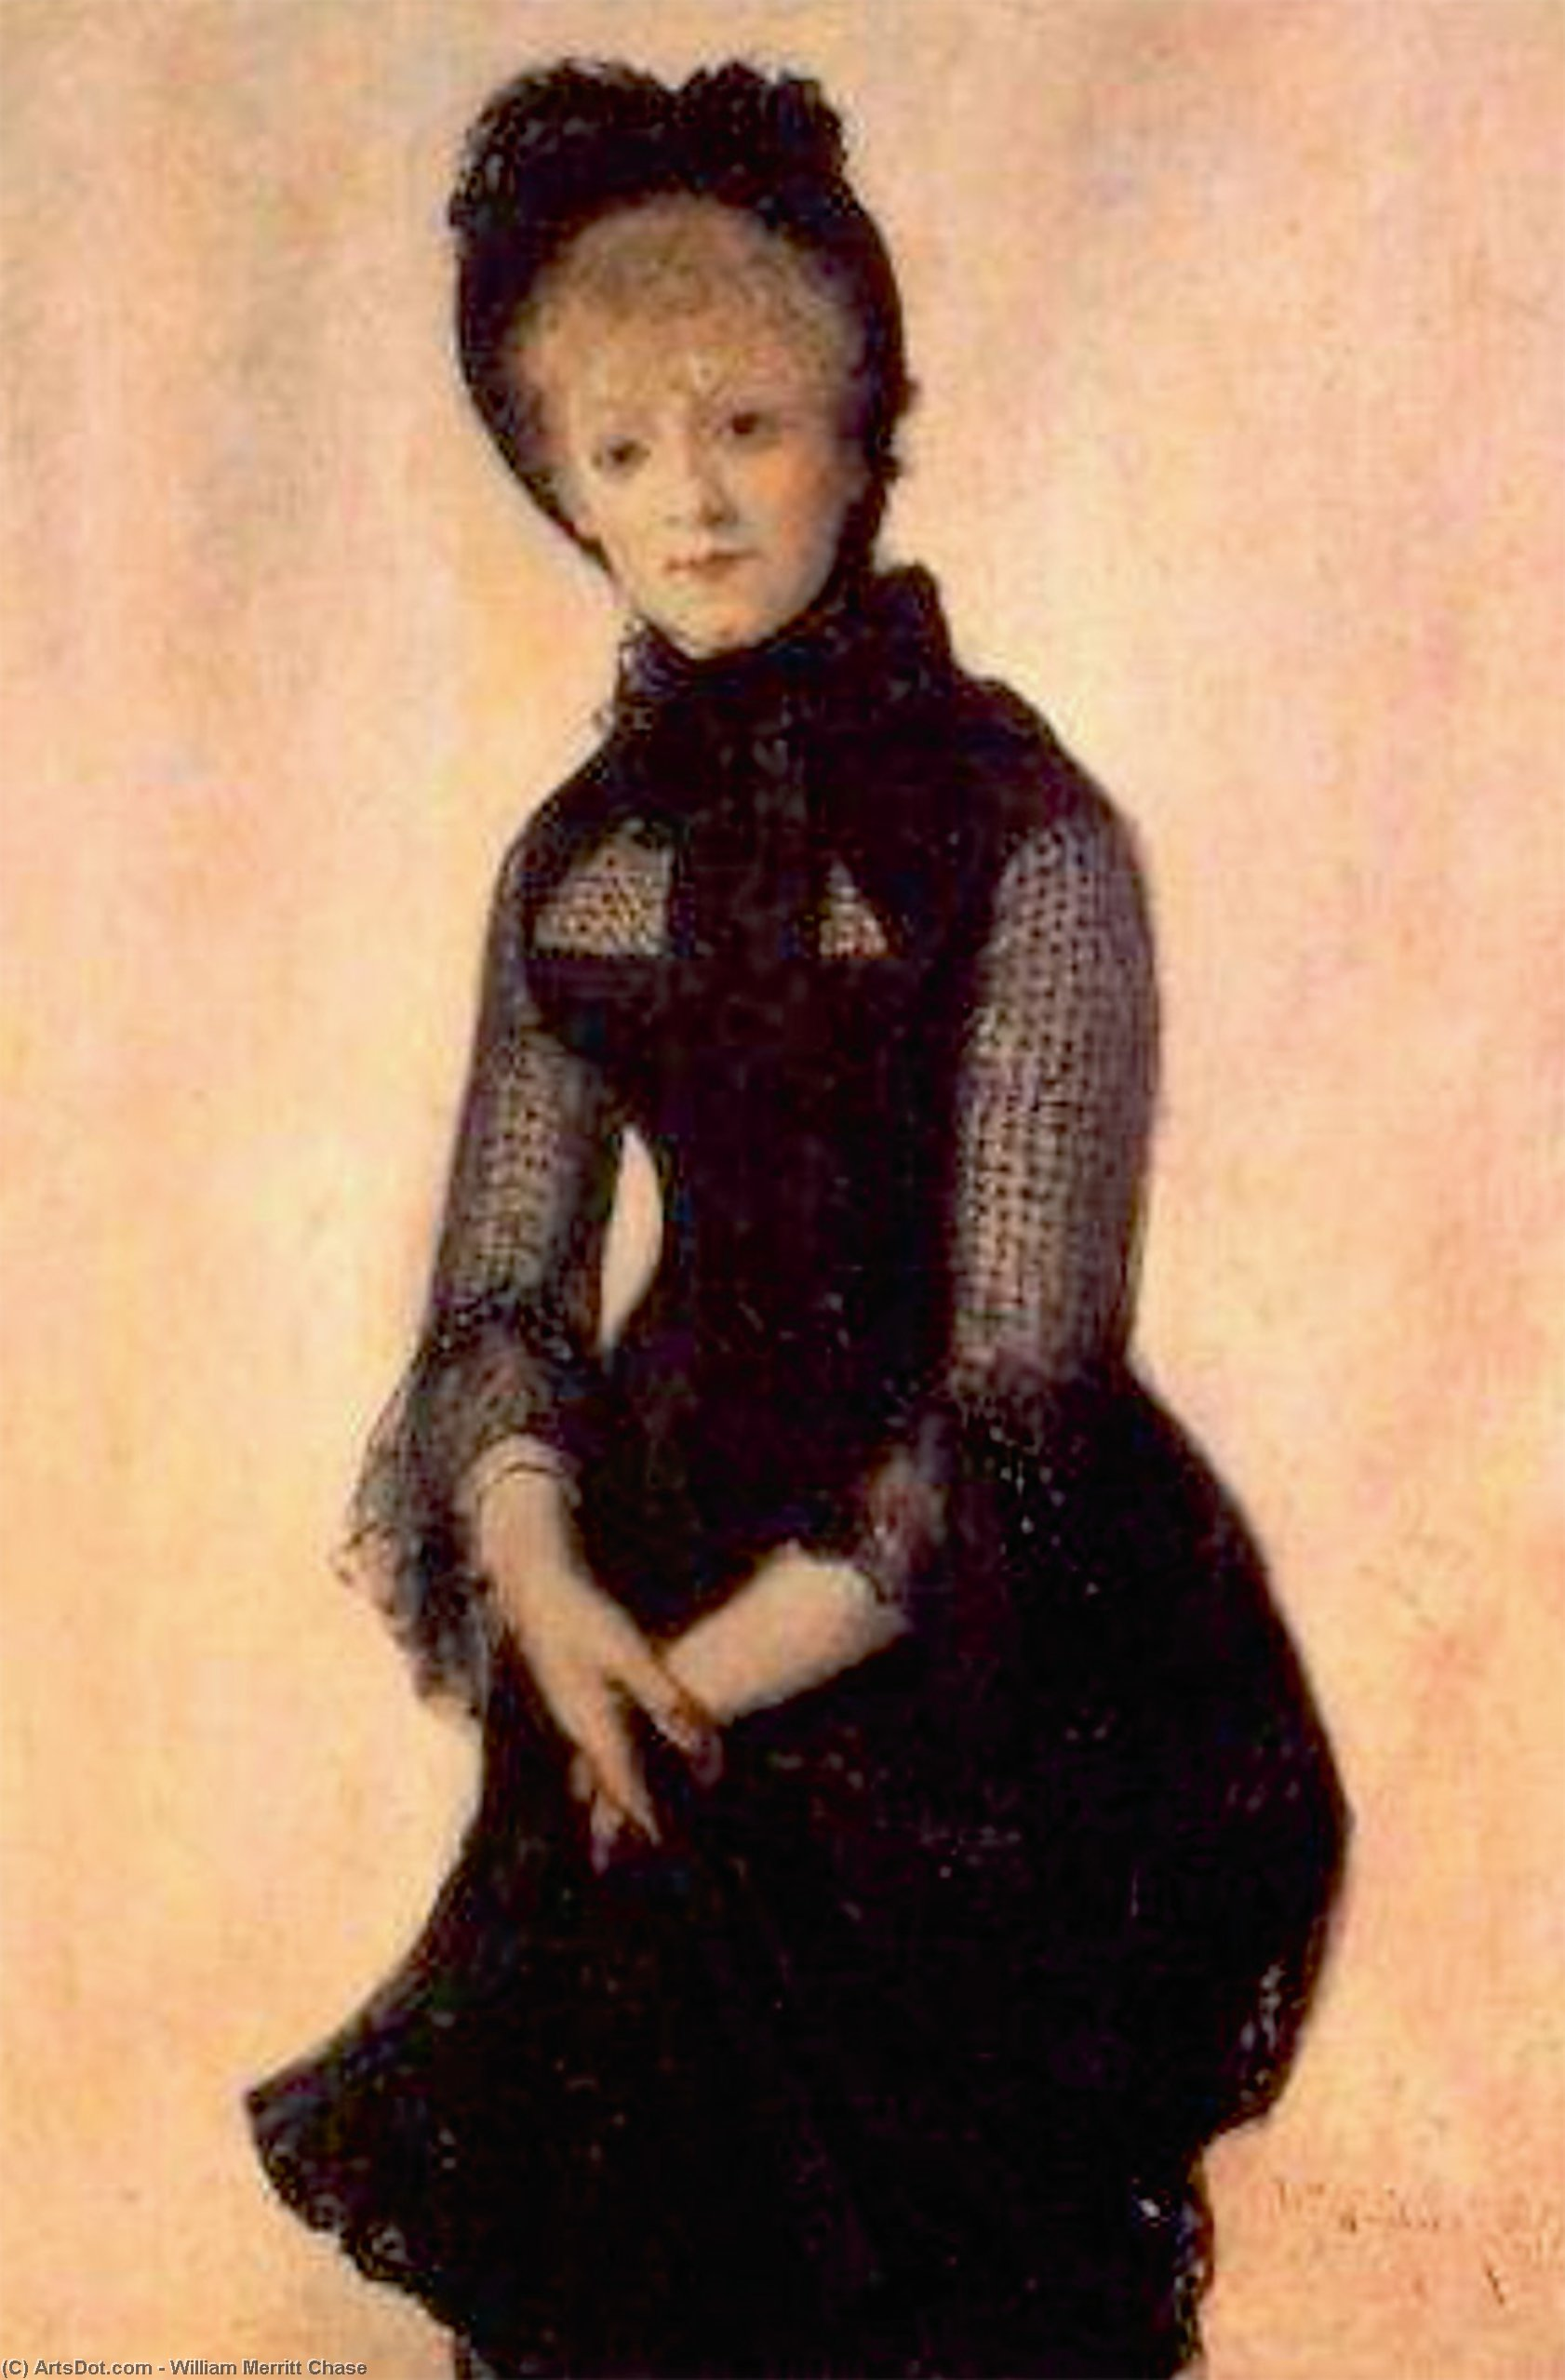 Ritratto harriet hubbard ayer, 1879 di William Merritt Chase (1849-1916, United States) | ArtsDot.com